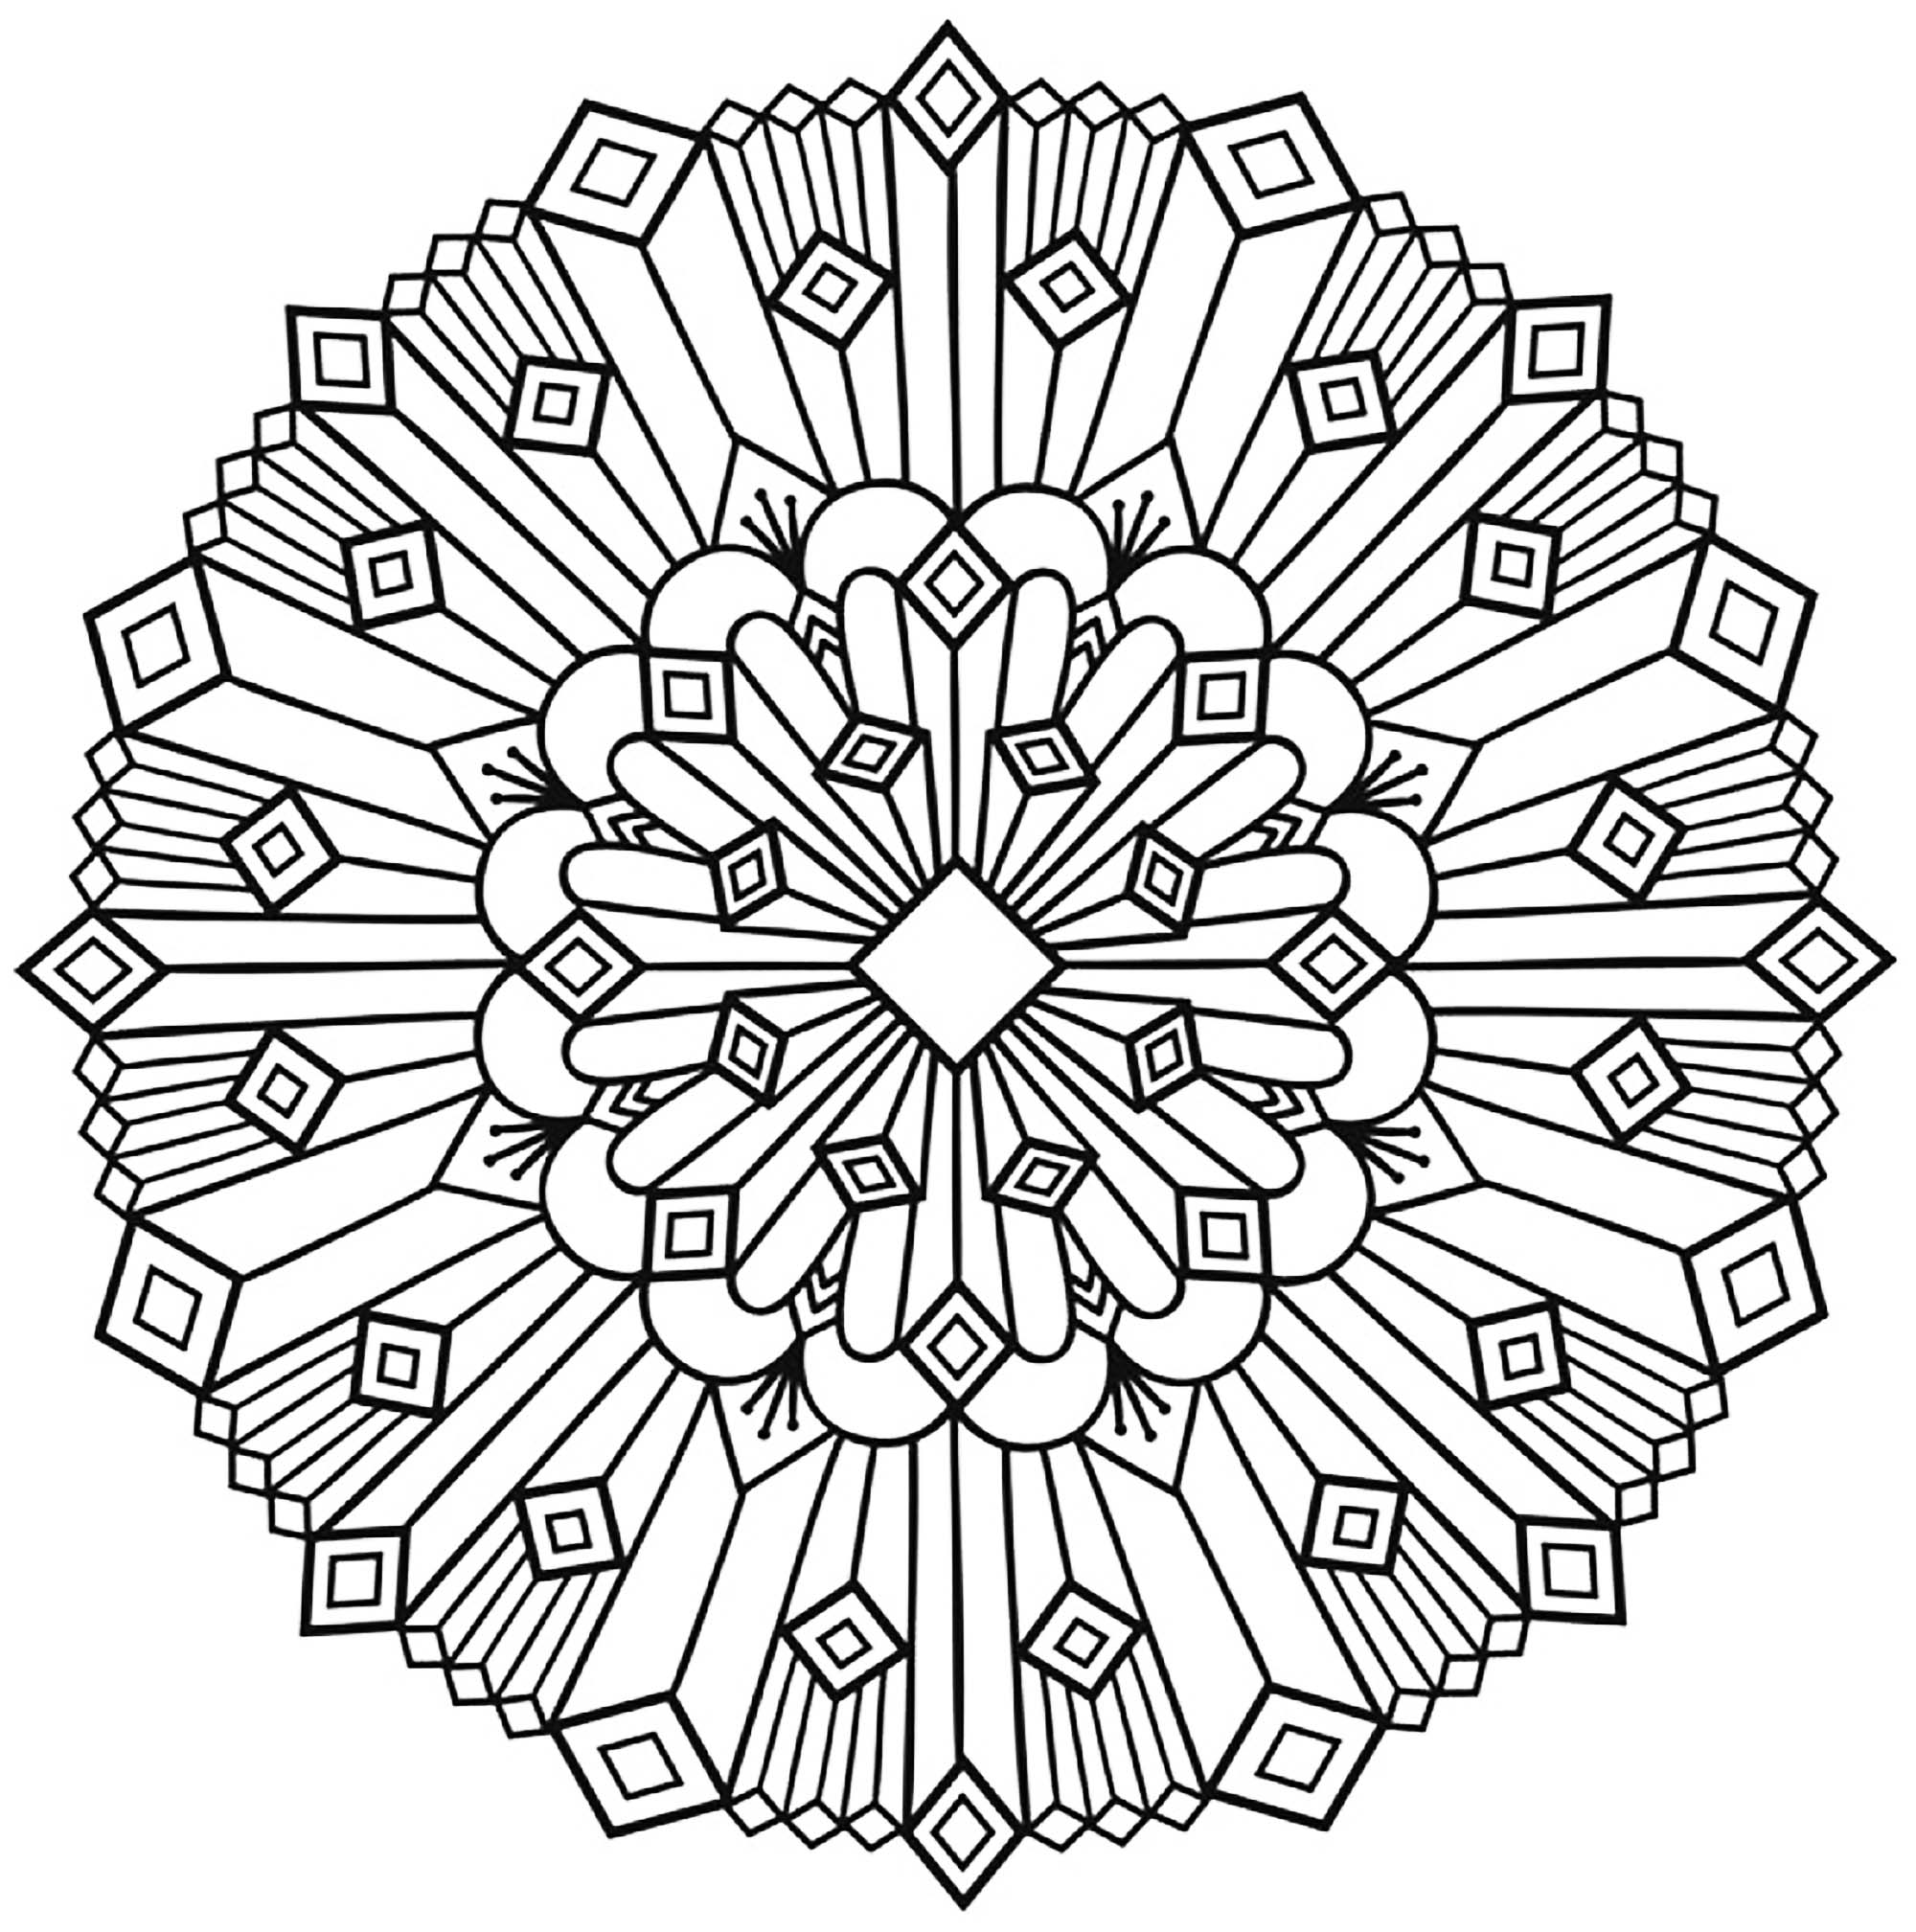 mandala art coloring pages Mandala art deco simple   Simple Mandalas   100% Mandalas Zen  mandala art coloring pages